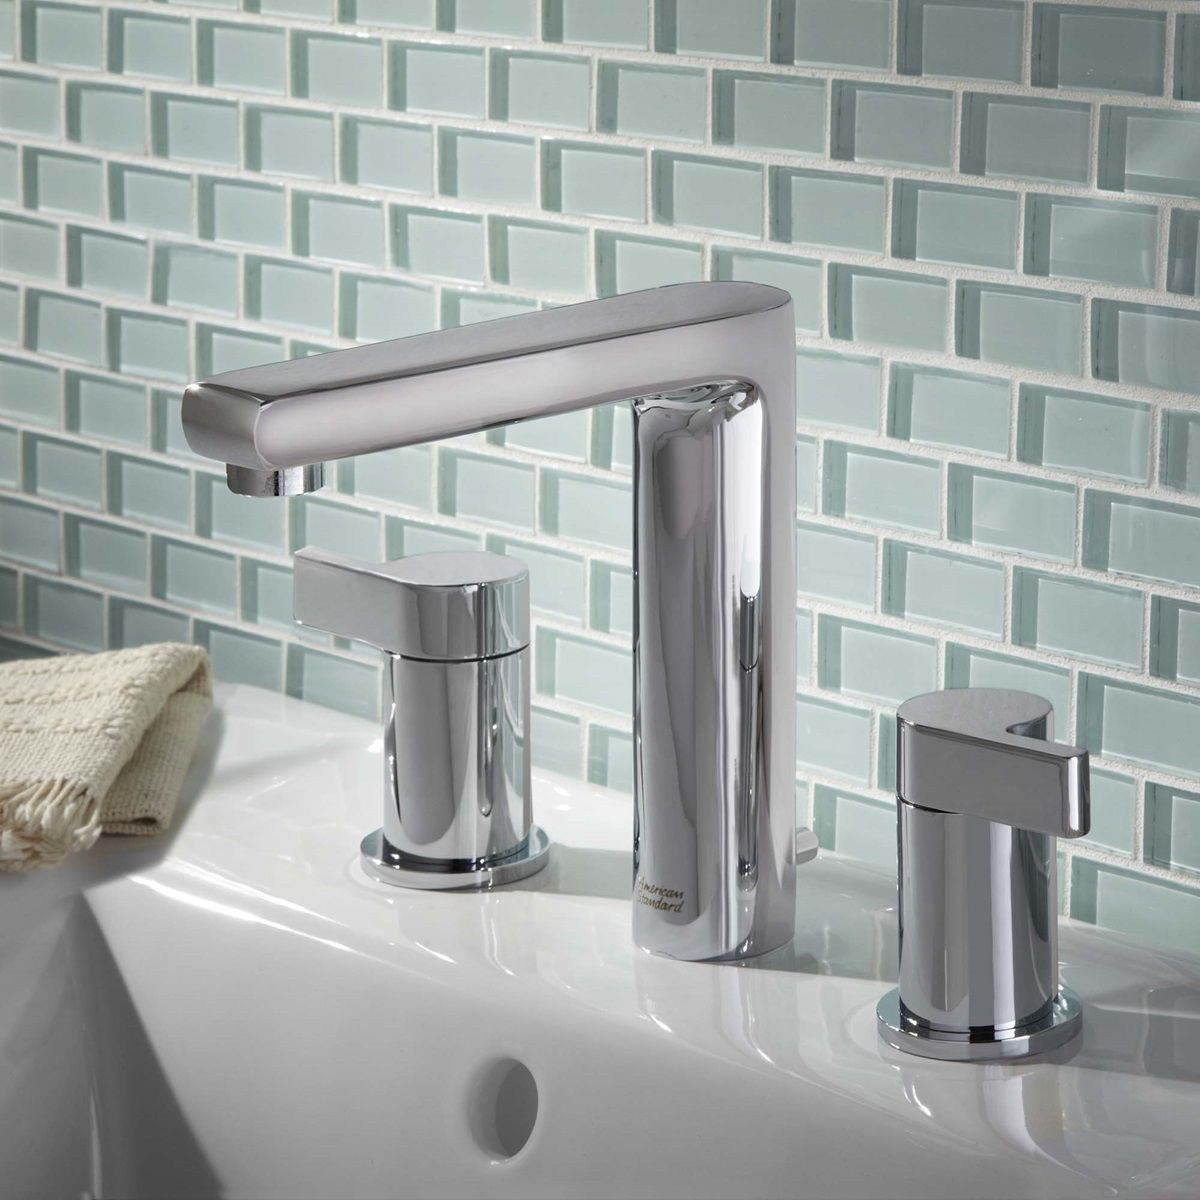 Contemporary Art Websites The Studio widespread bathroom faucet features the exclusive Speed Connect Metal Drain which installs in less time and has fewer parts that needs no